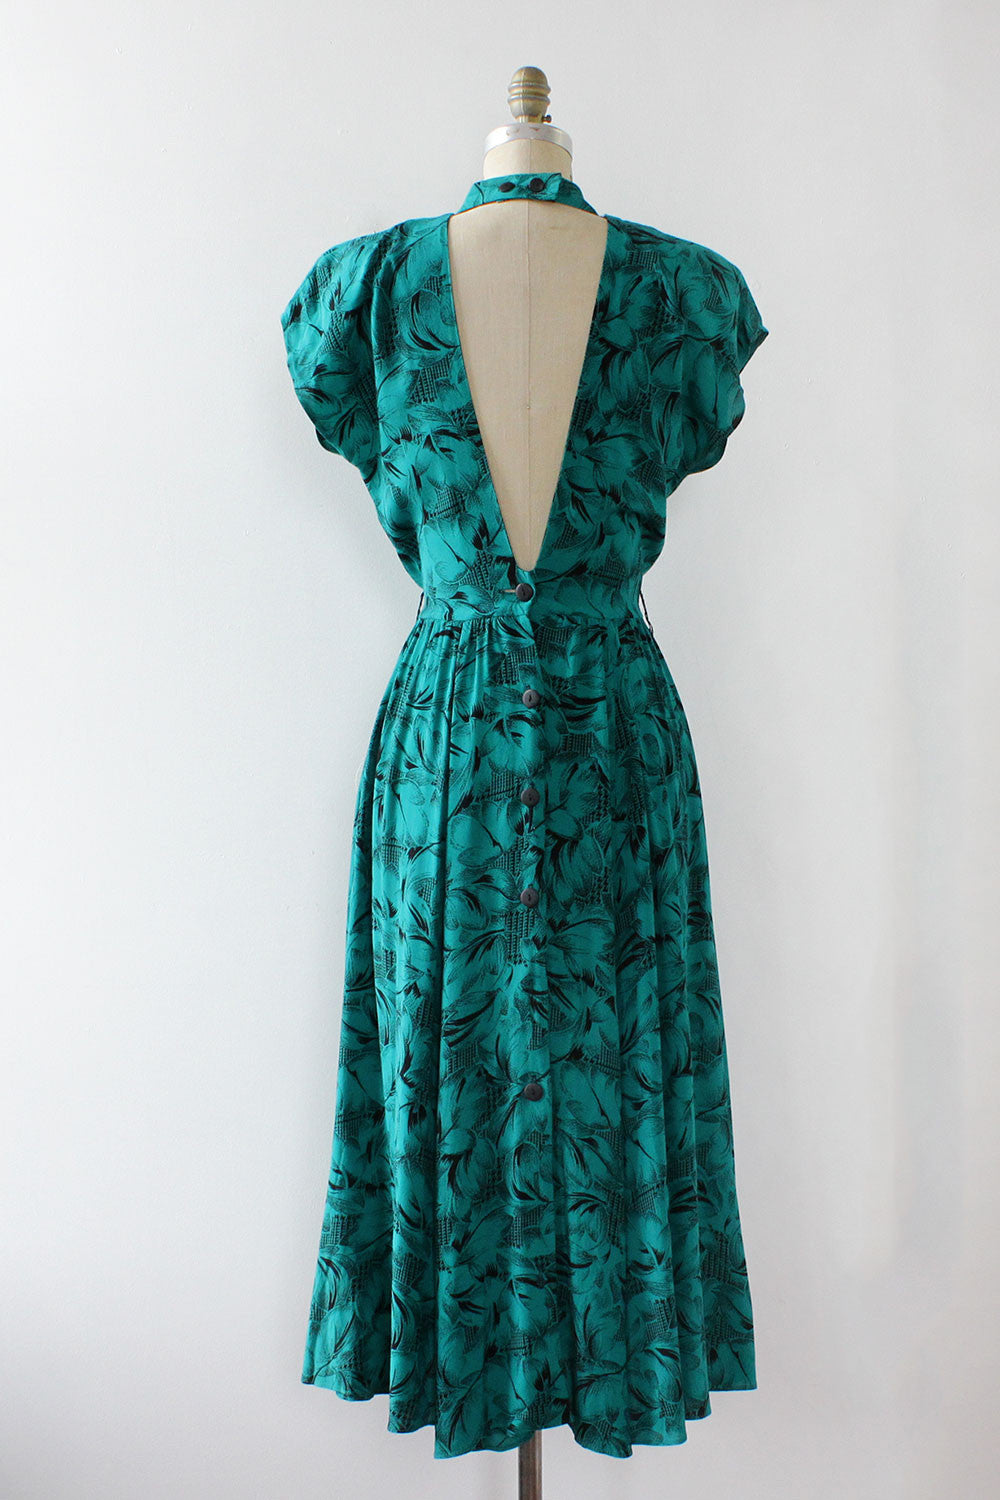 Teal Jungle Open Back Dress S/M